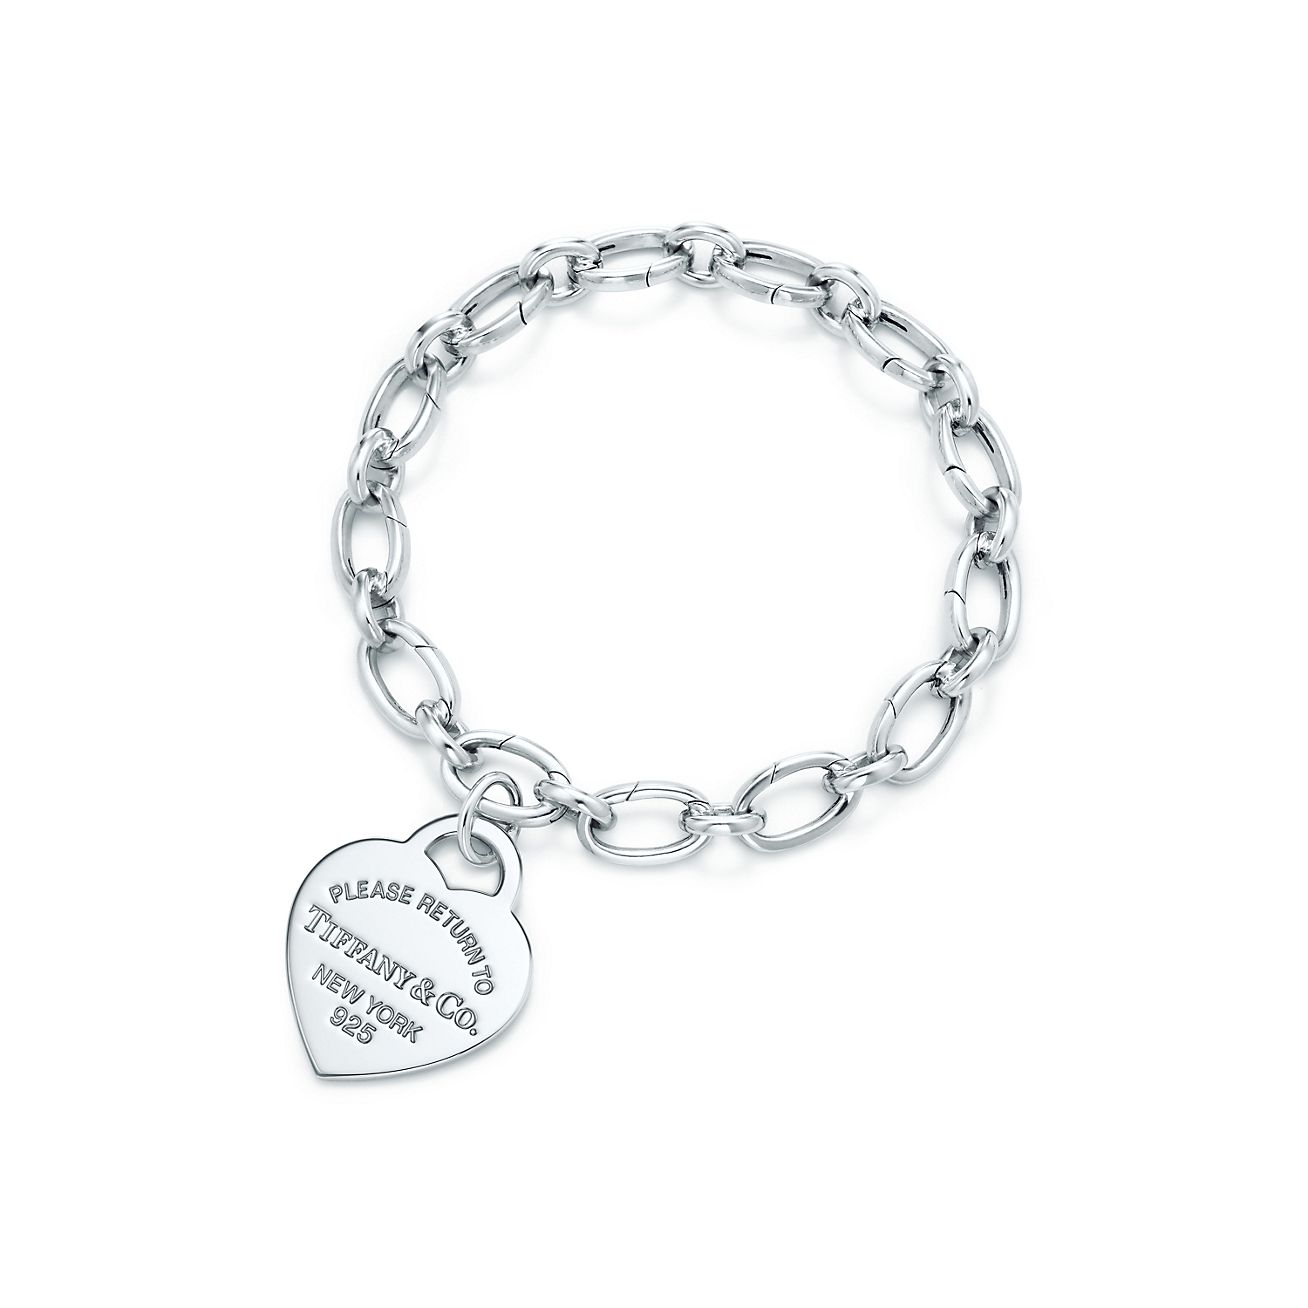 Heart Tag Charm In Sterling Silver On A